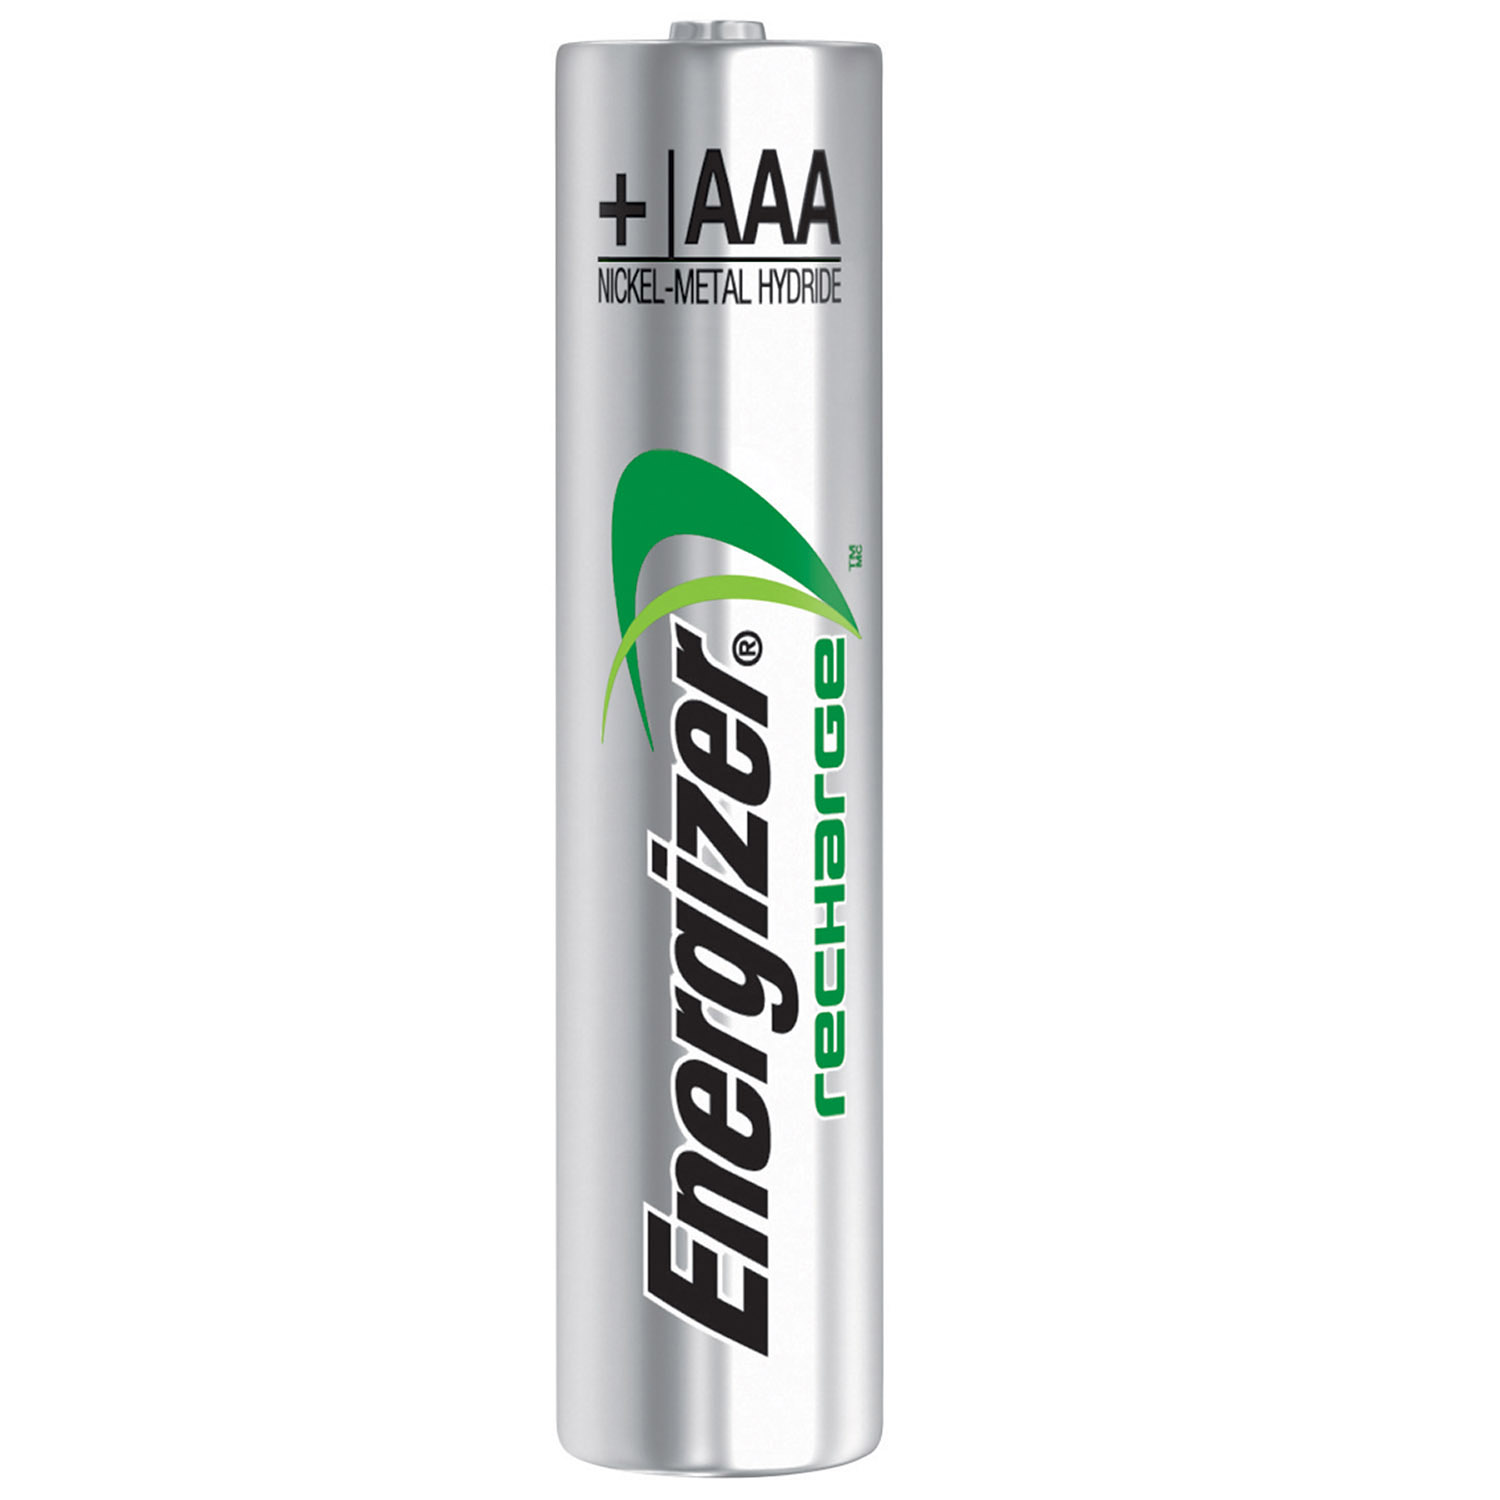 Energizer AAA Rechargeable Batteries (4 Pack)